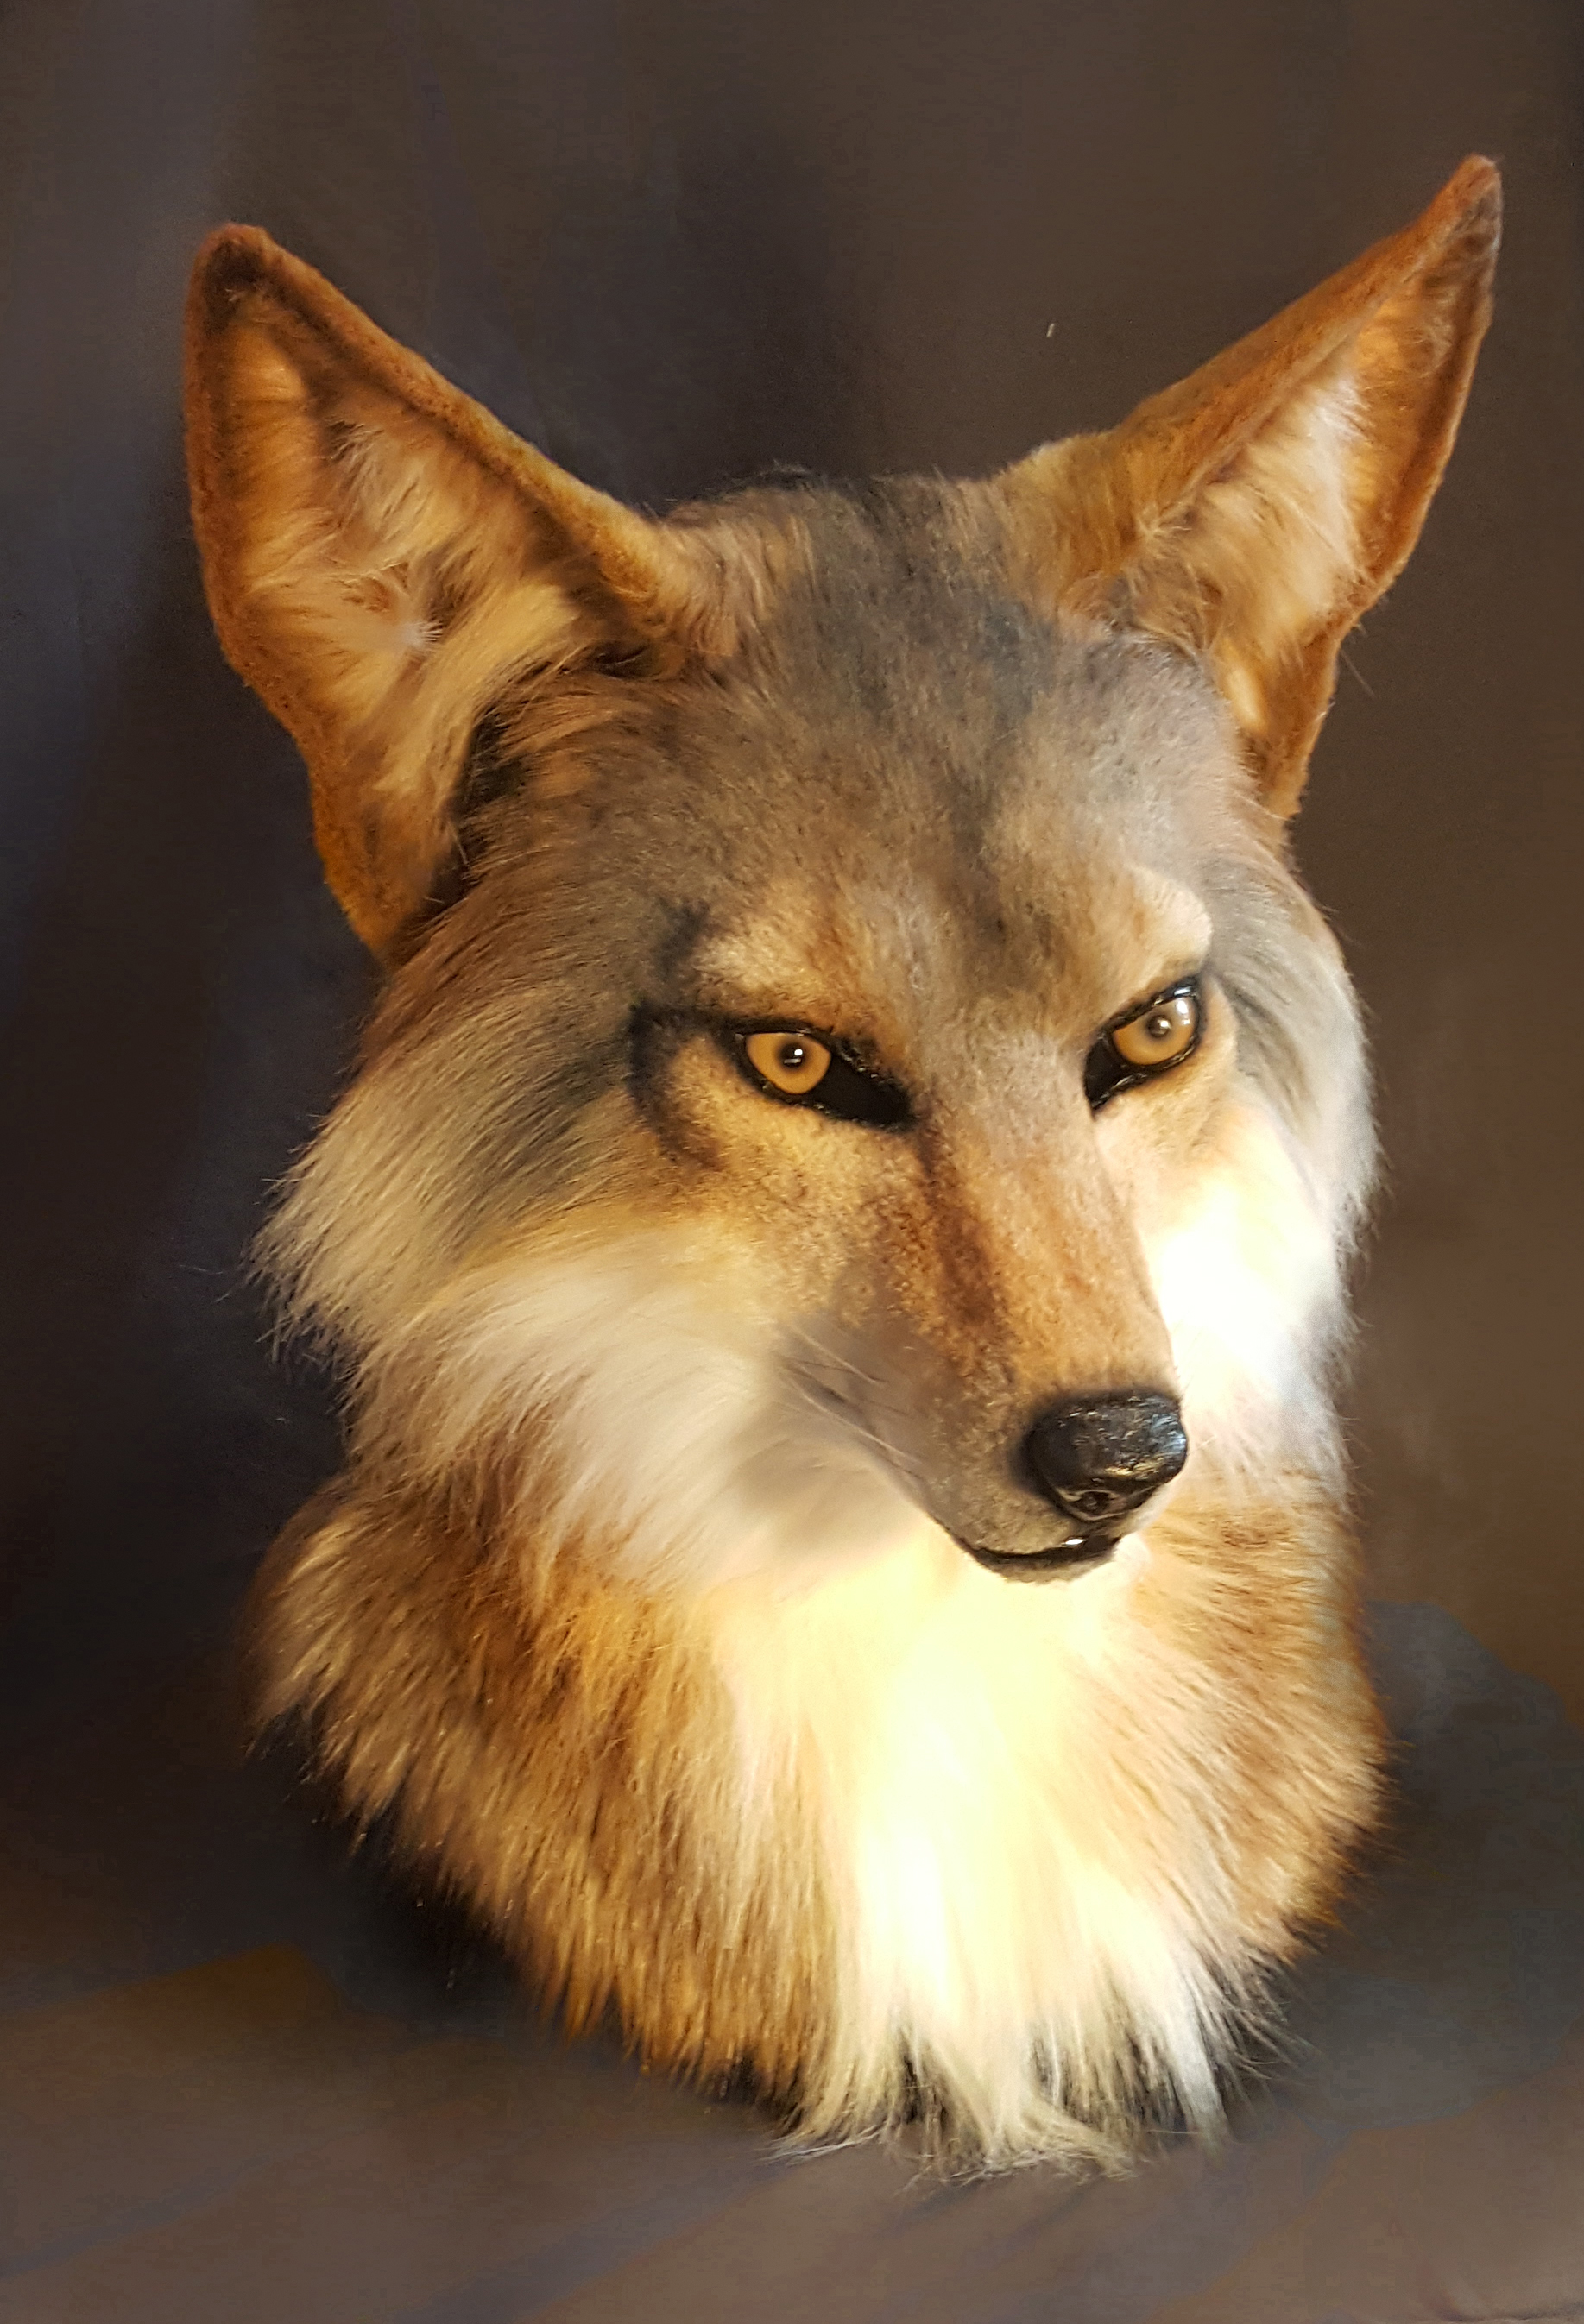 Coyote Head - $2300 - Features Include:moving jaw3 fur colorscustom airbrushing